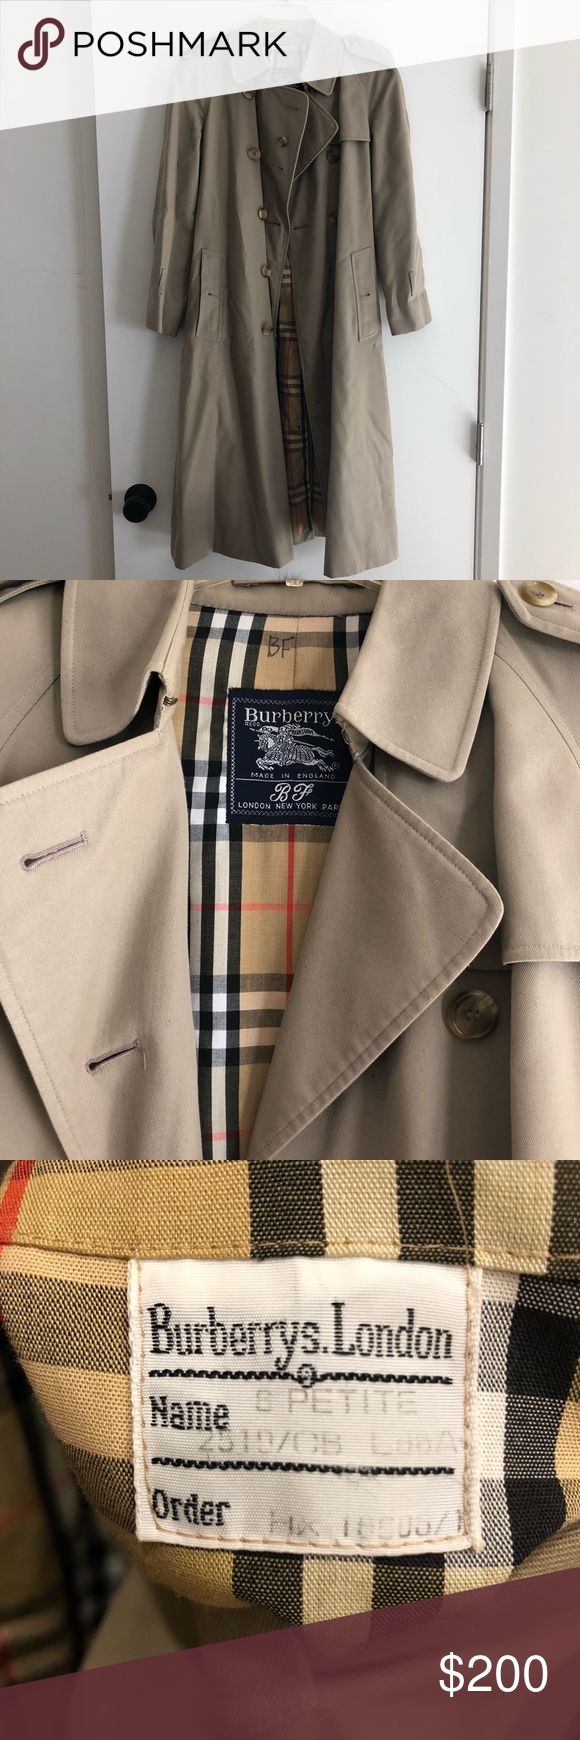 Vintage Burberry Trench Coat Burberry Trench Coat Burberry Trench Trench Coat